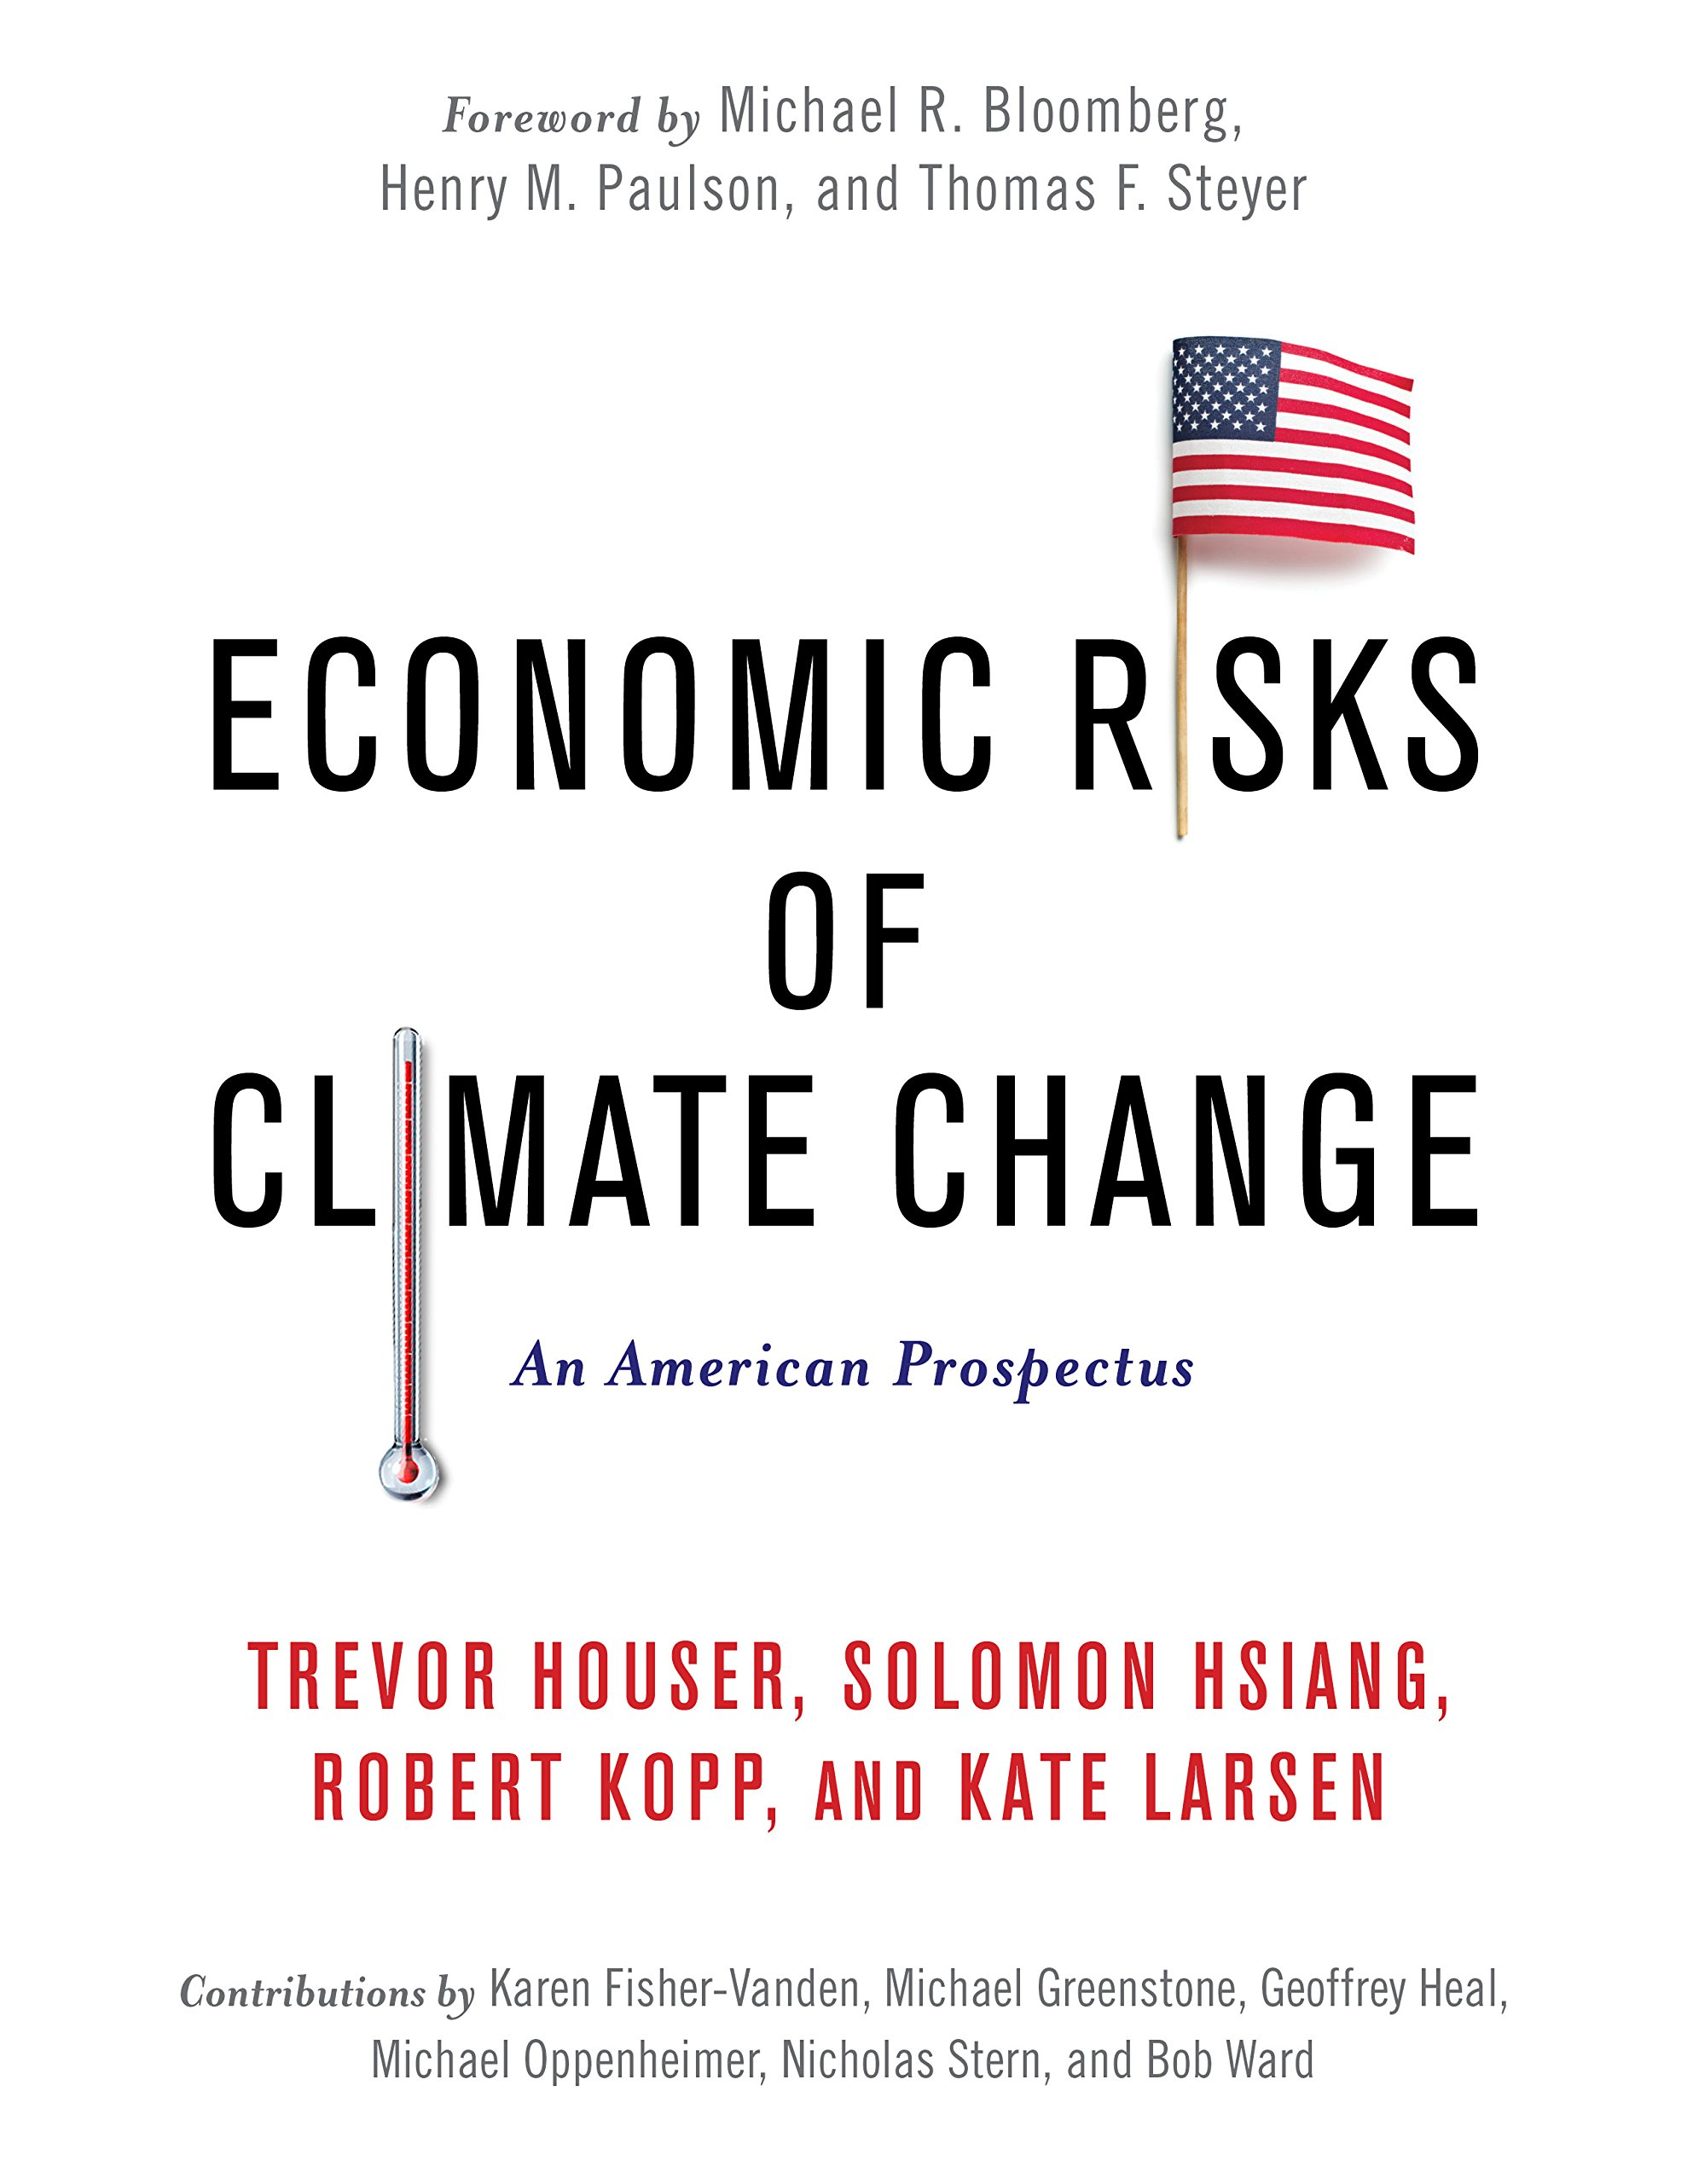 Image OfEconomic Risks Of Climate Change: An American Prospectus